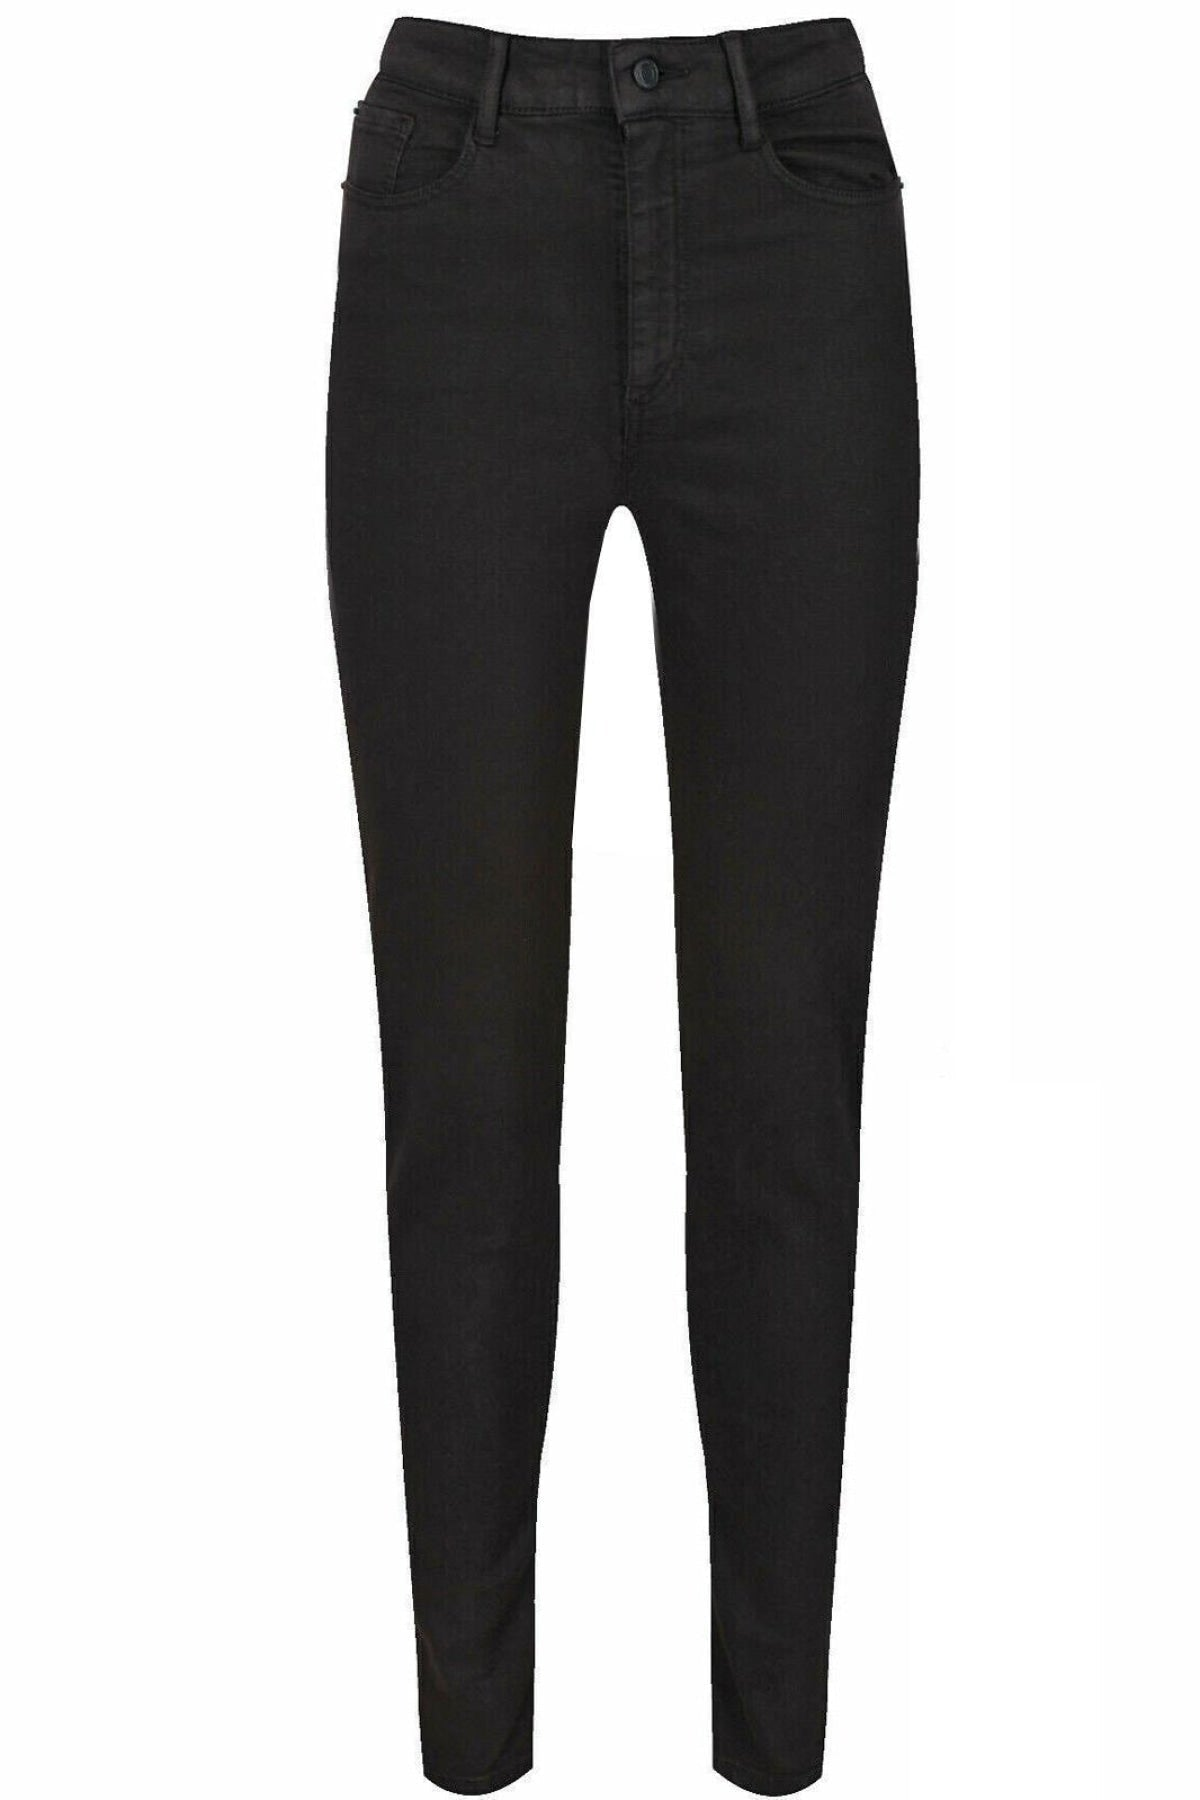 Marks & Spencer Super Skinny Jeans | Secret Label